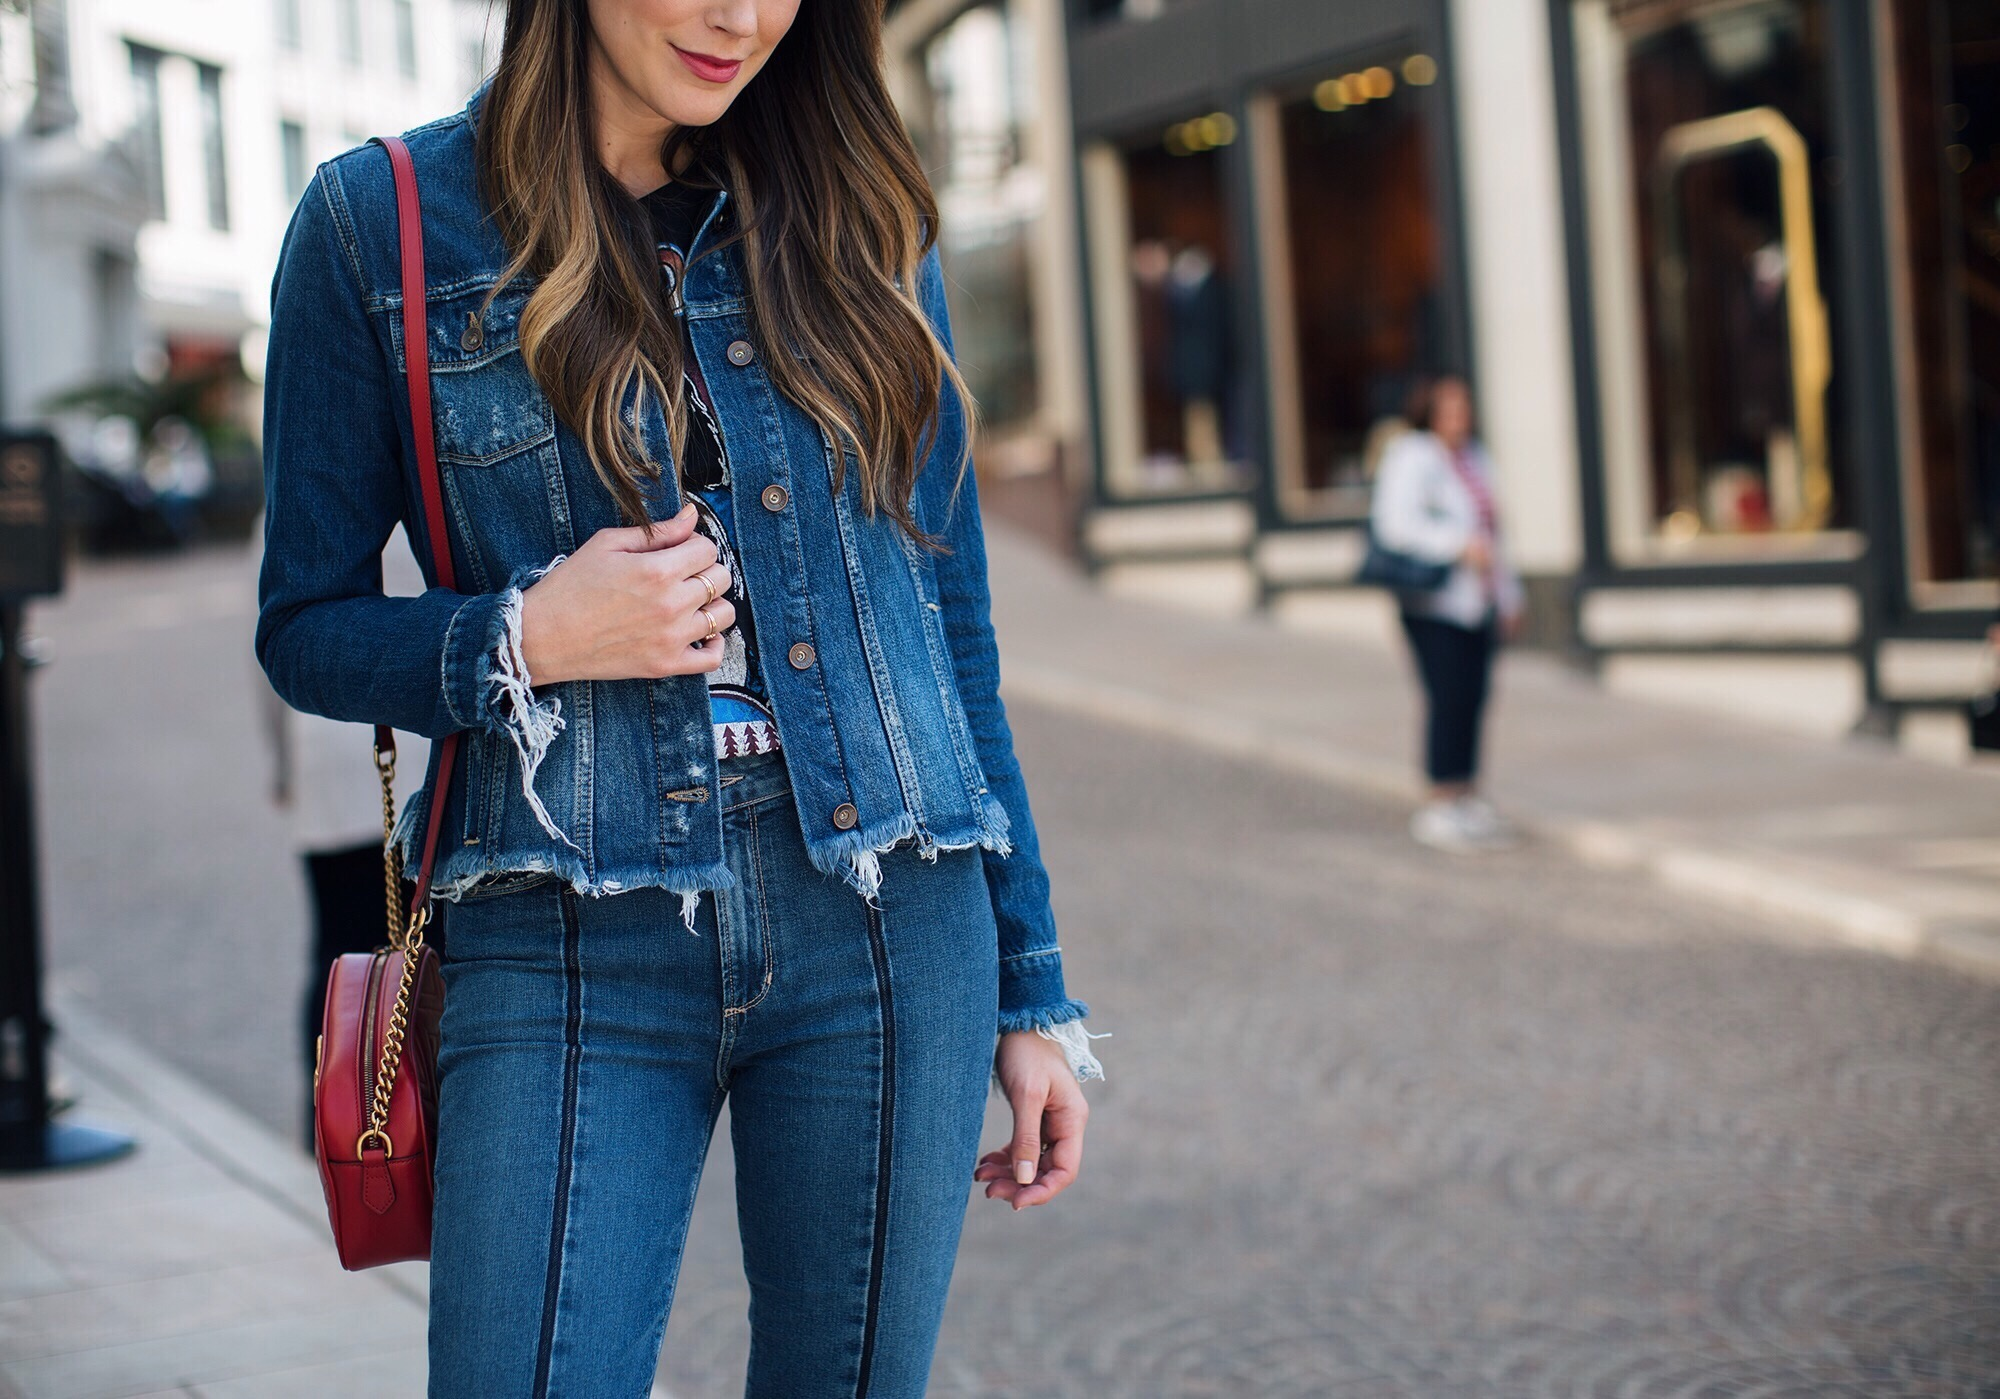 Top 5 Denim Jacket